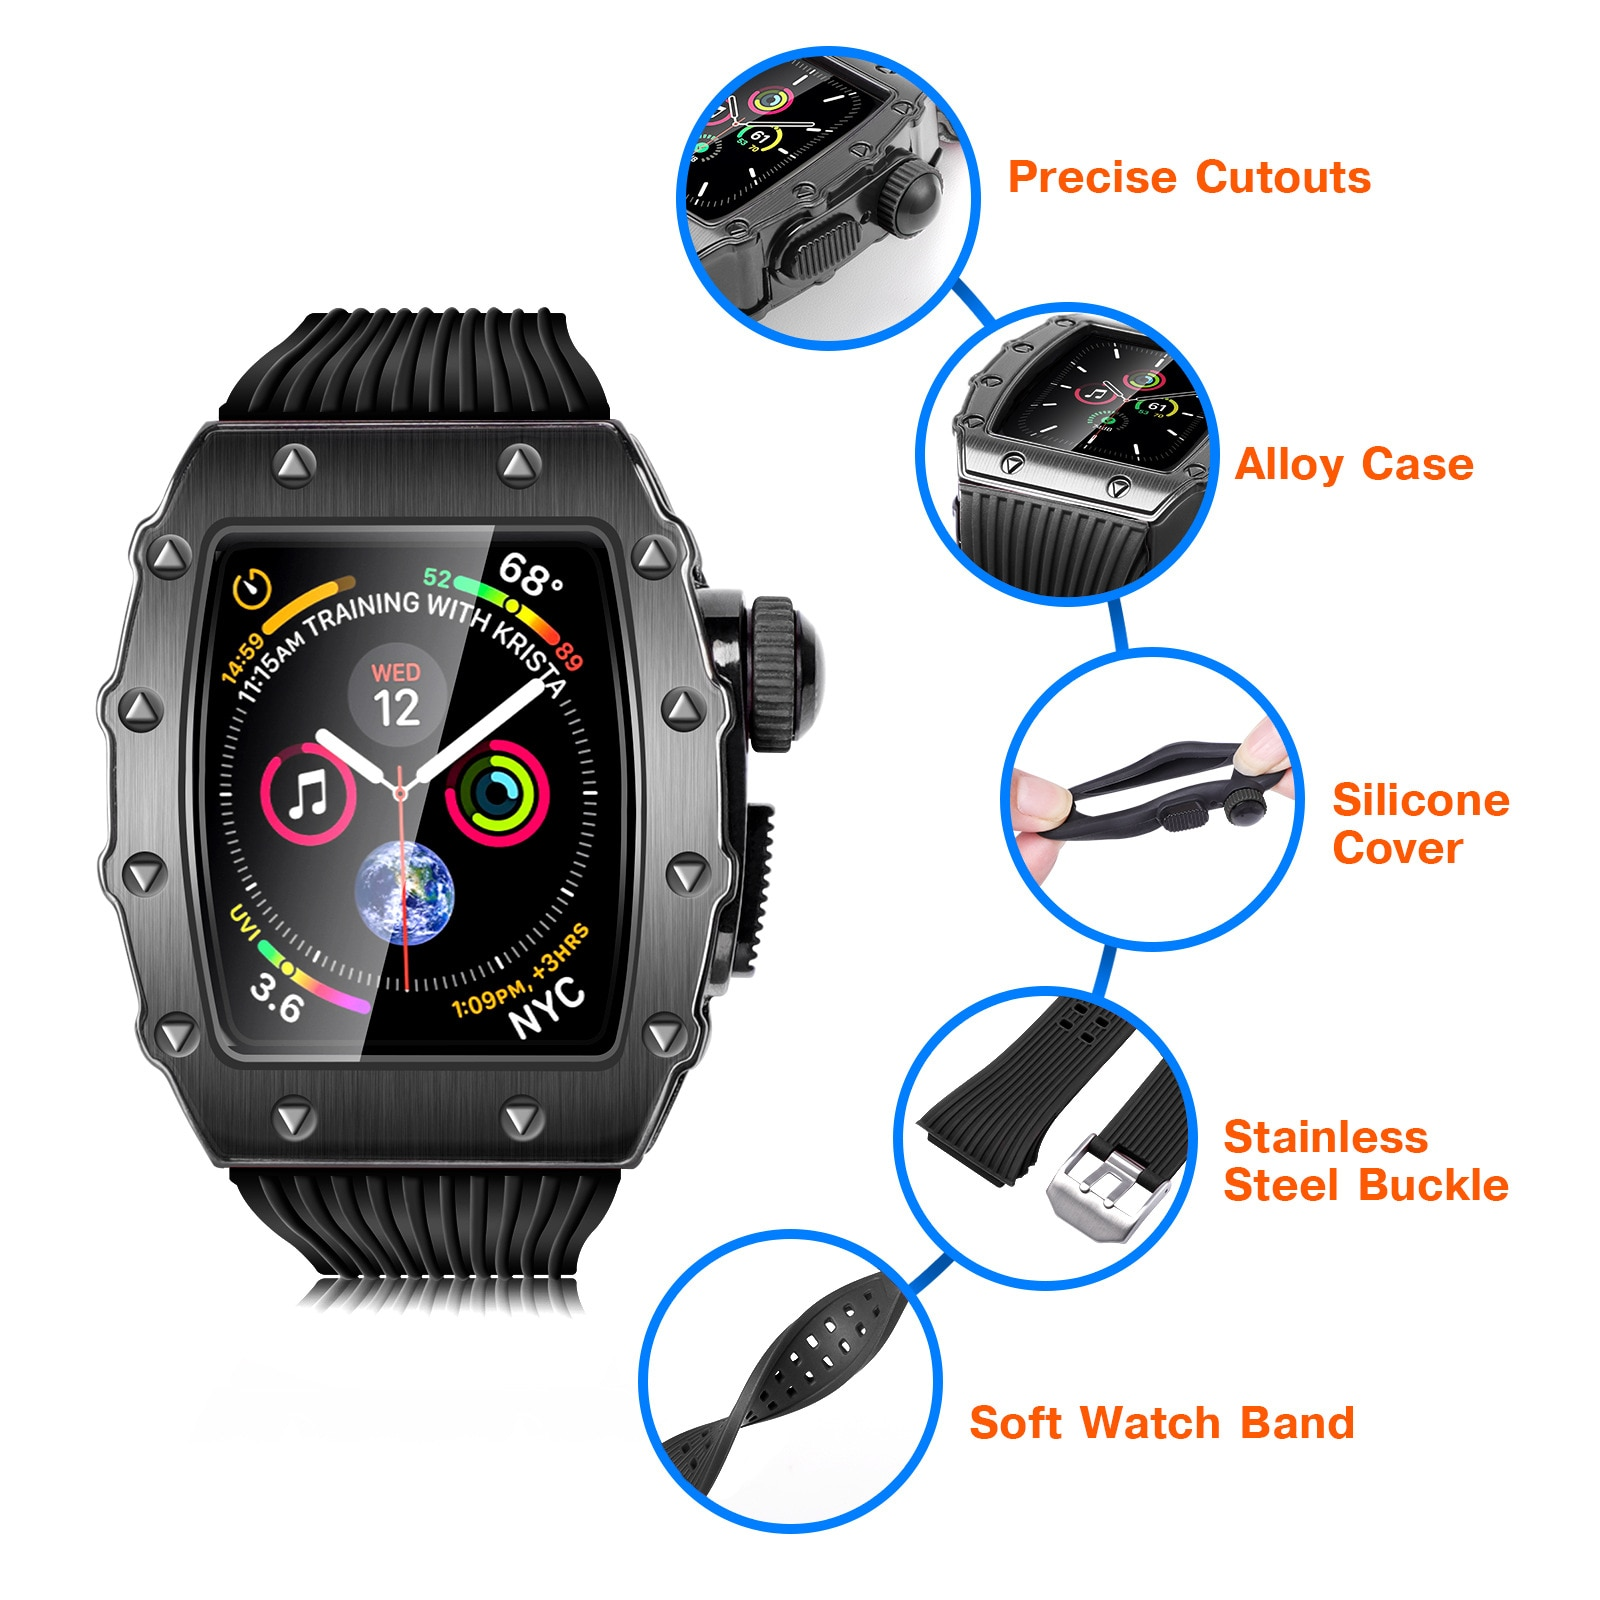 44mm Metal Watch Case+Strap for Apple Watch 6 5 4 Silicone Watch Band for iWatch Series SE Aluminum Alloy Case Modification Kit enlarge